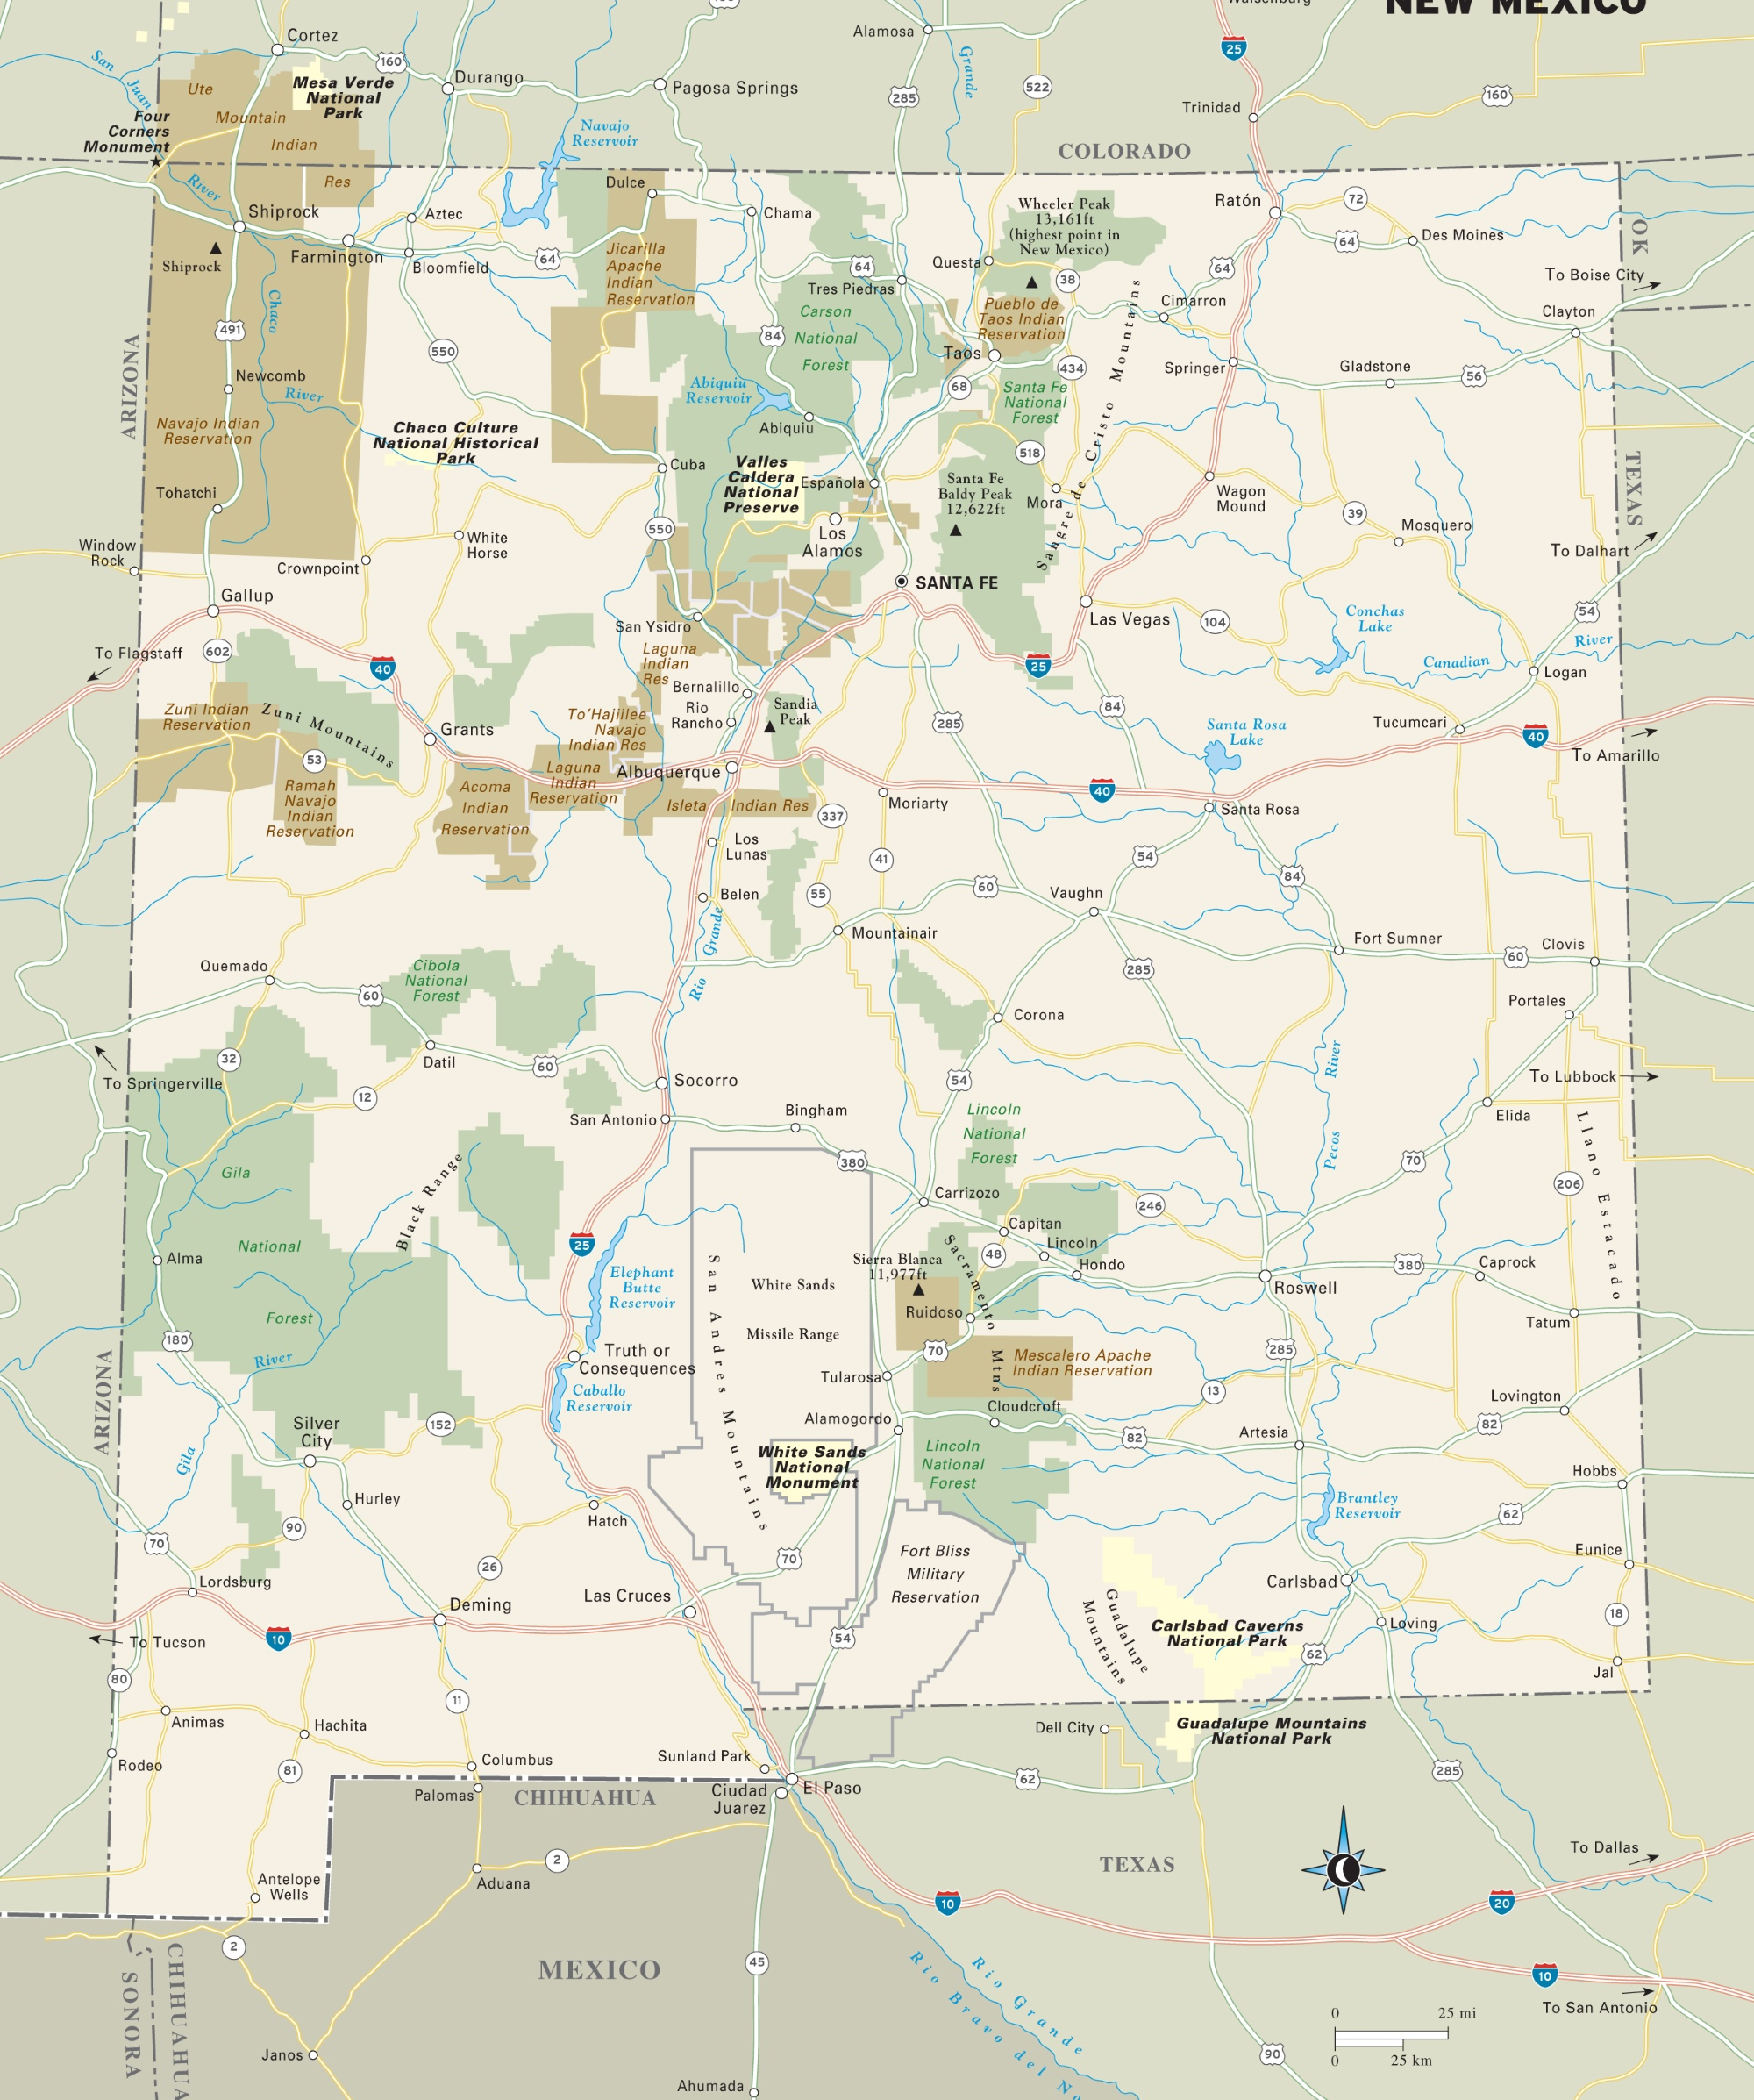 New Mexico National Parks, Monuments And Forests Map - National Parks In Texas Map